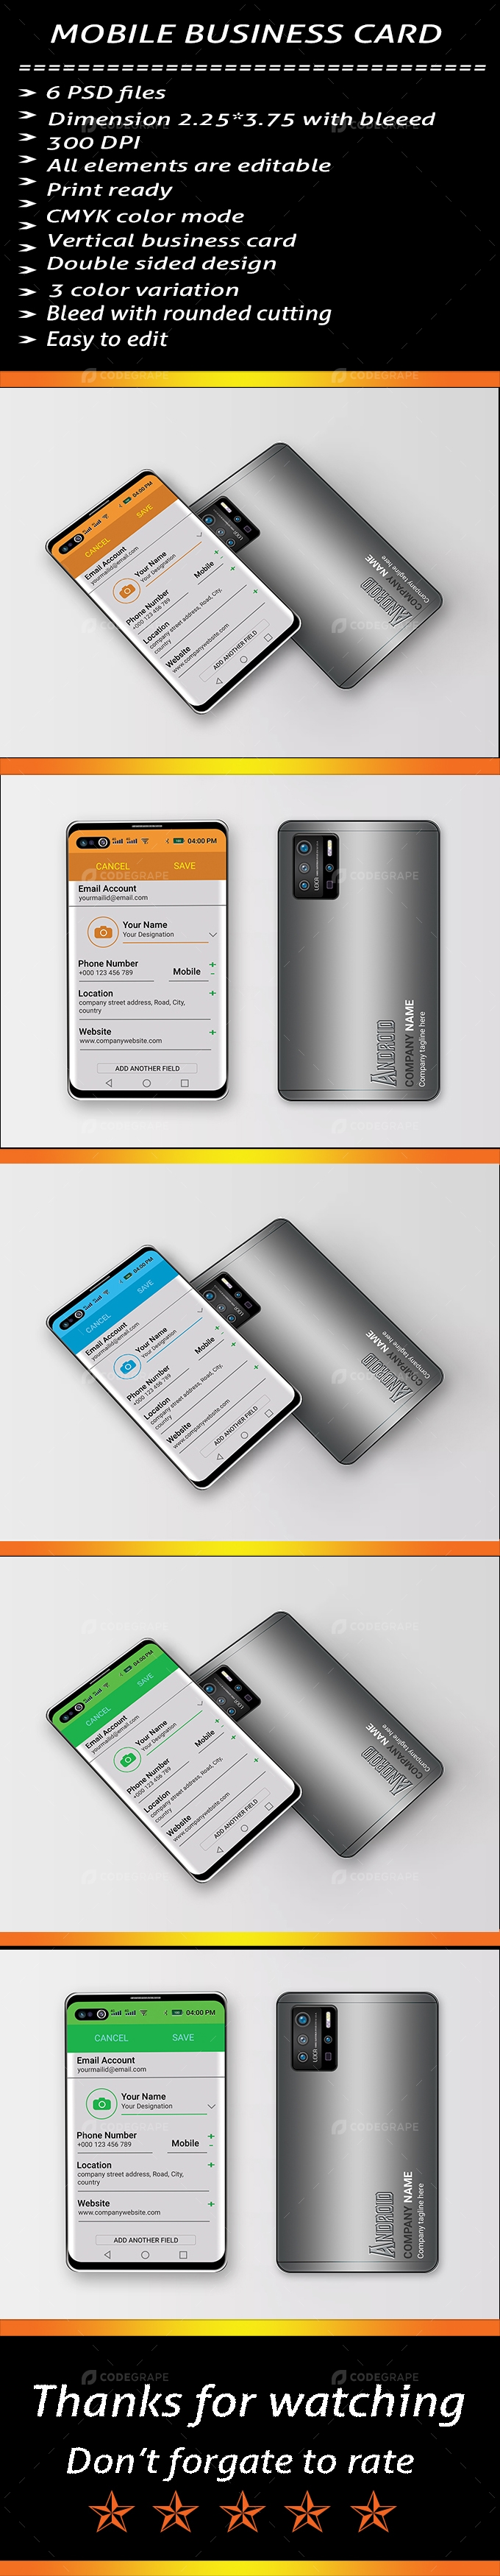 Mobile Phone Business Card Template 02